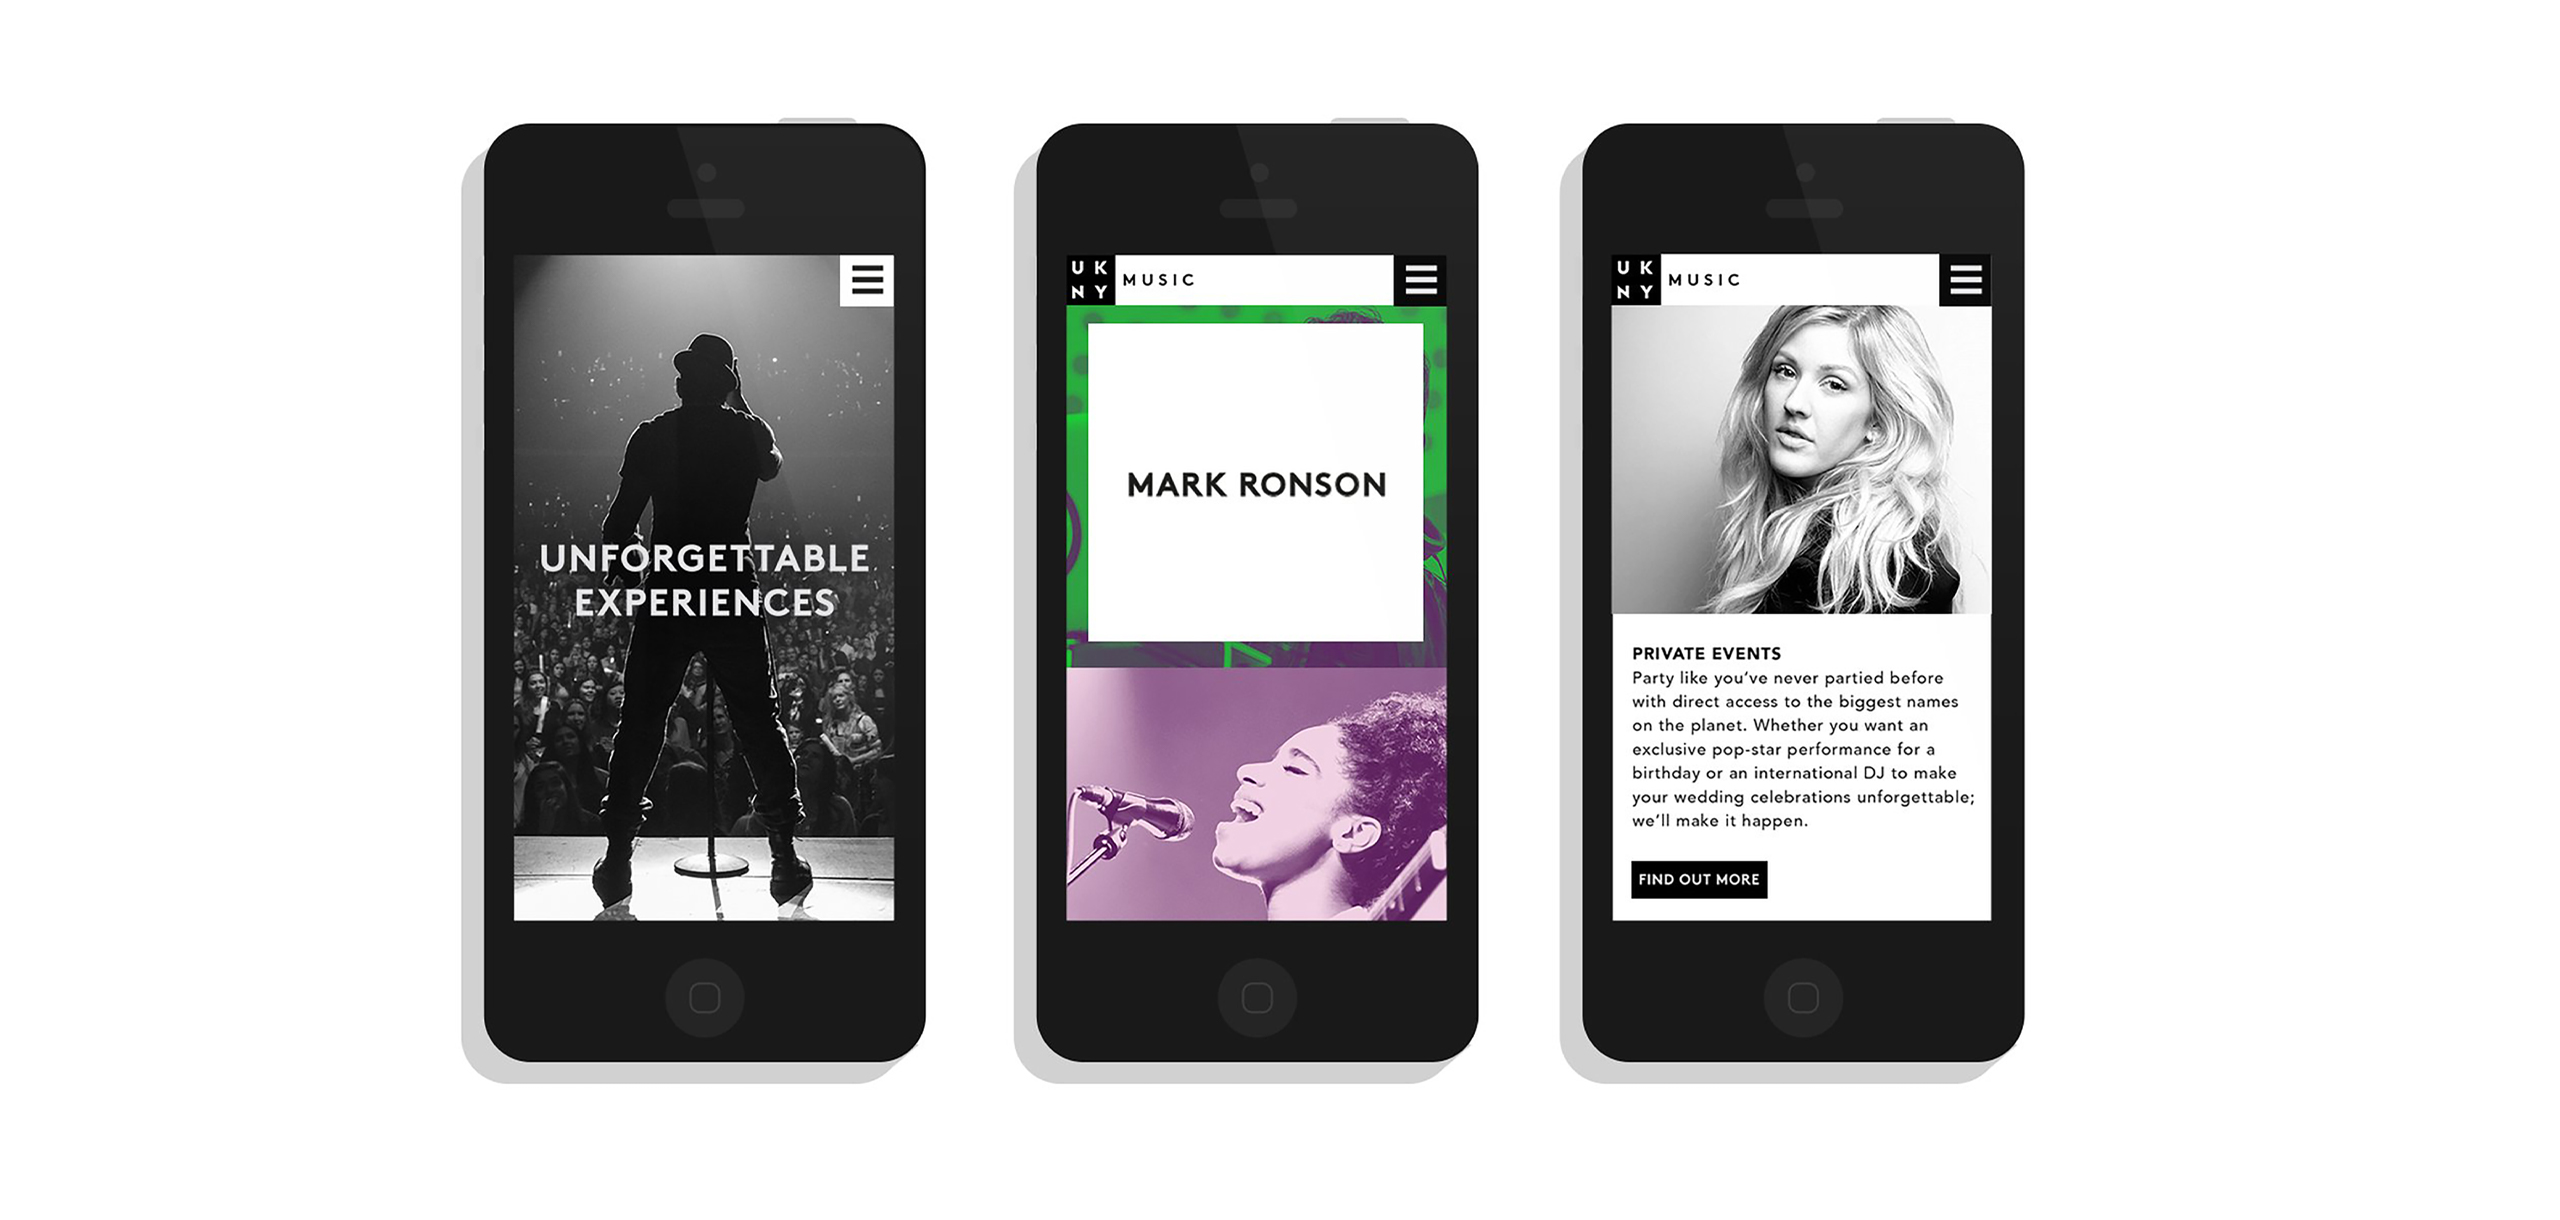 App design for entertainment brand UKNY, designed by White Bear Studio